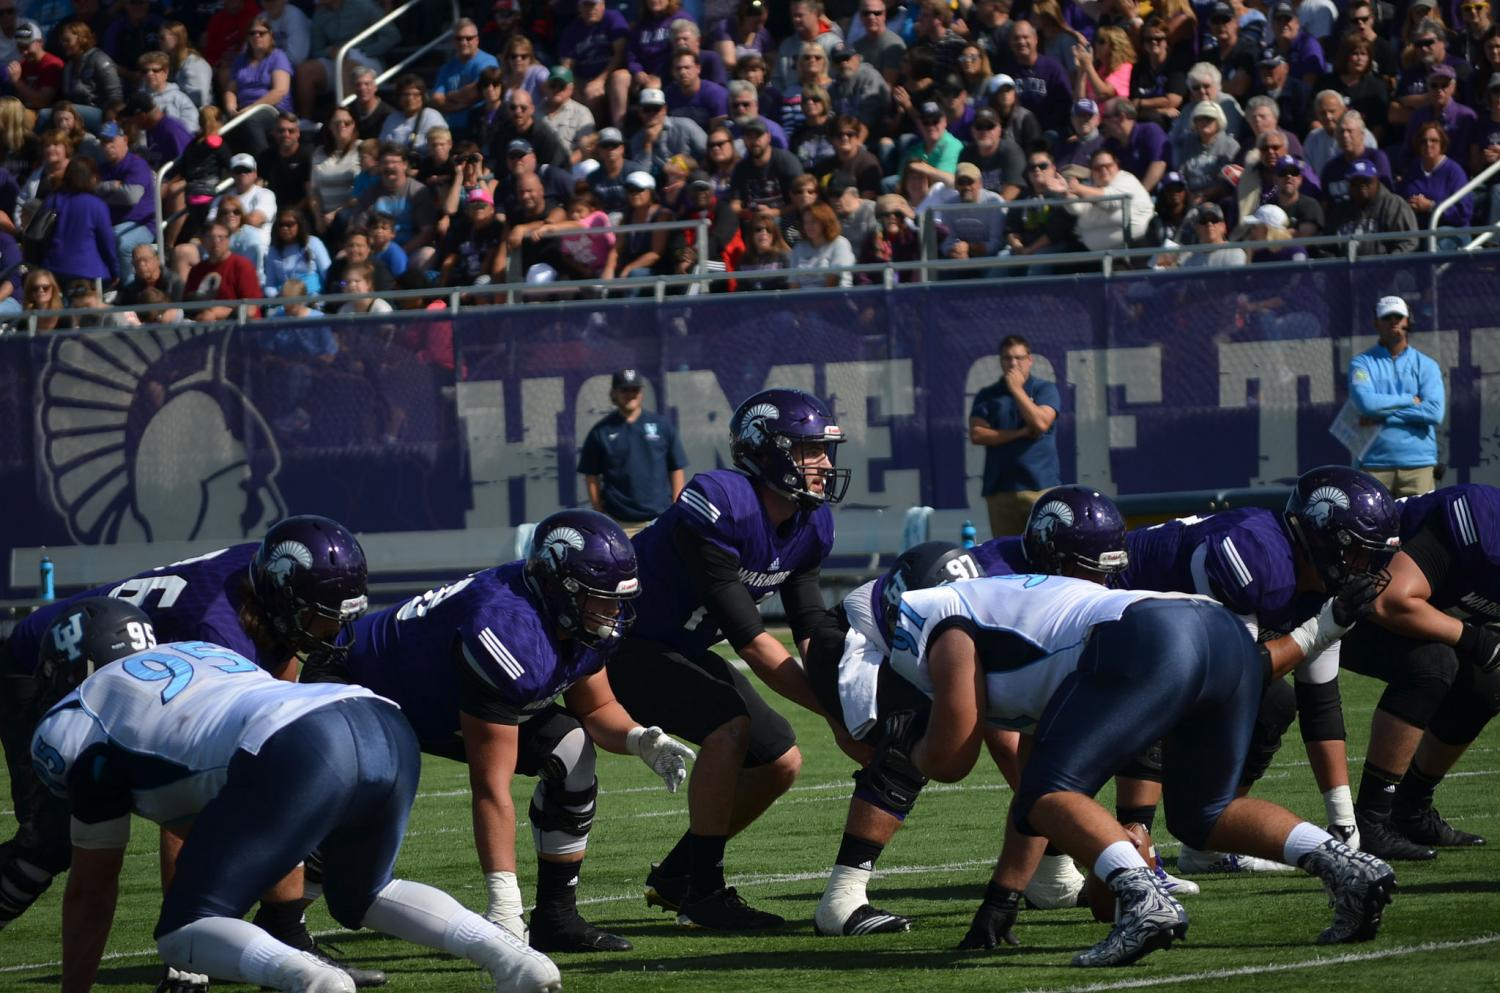 Winona State football players get ready to start a play at their game against Upper Iowa University on Sept. 30. The Warriors swept the game winning 37-7.